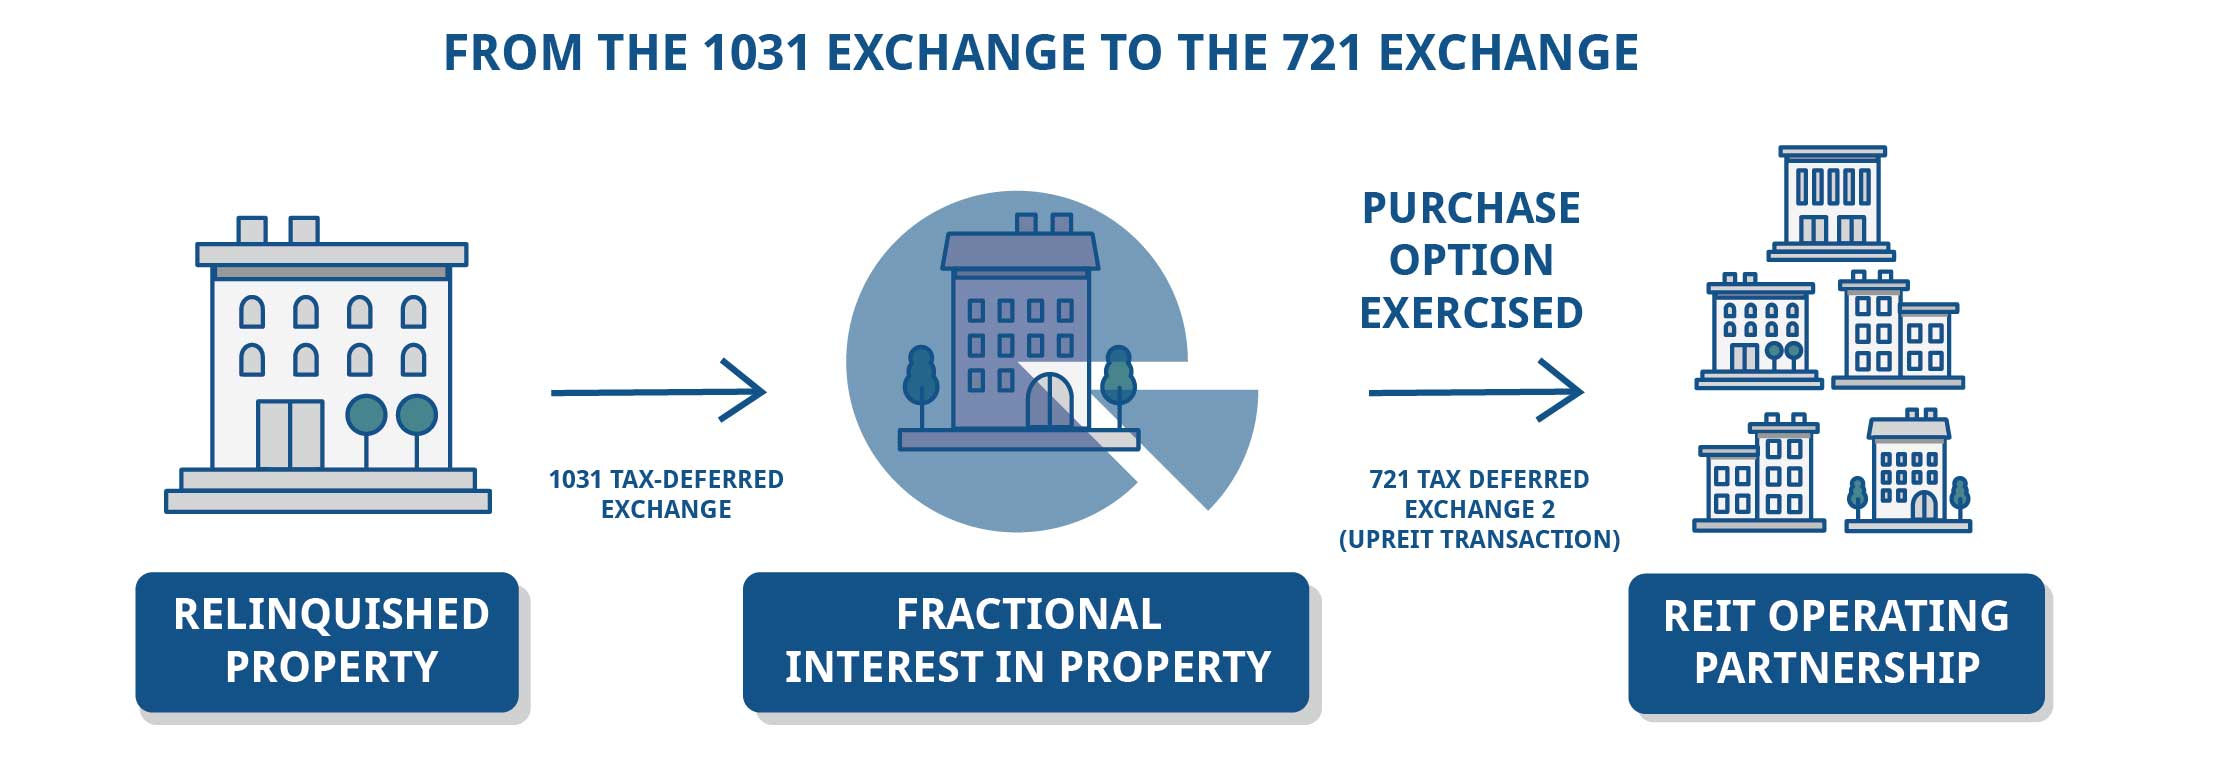 1031 Exchange to a 721 Exchange